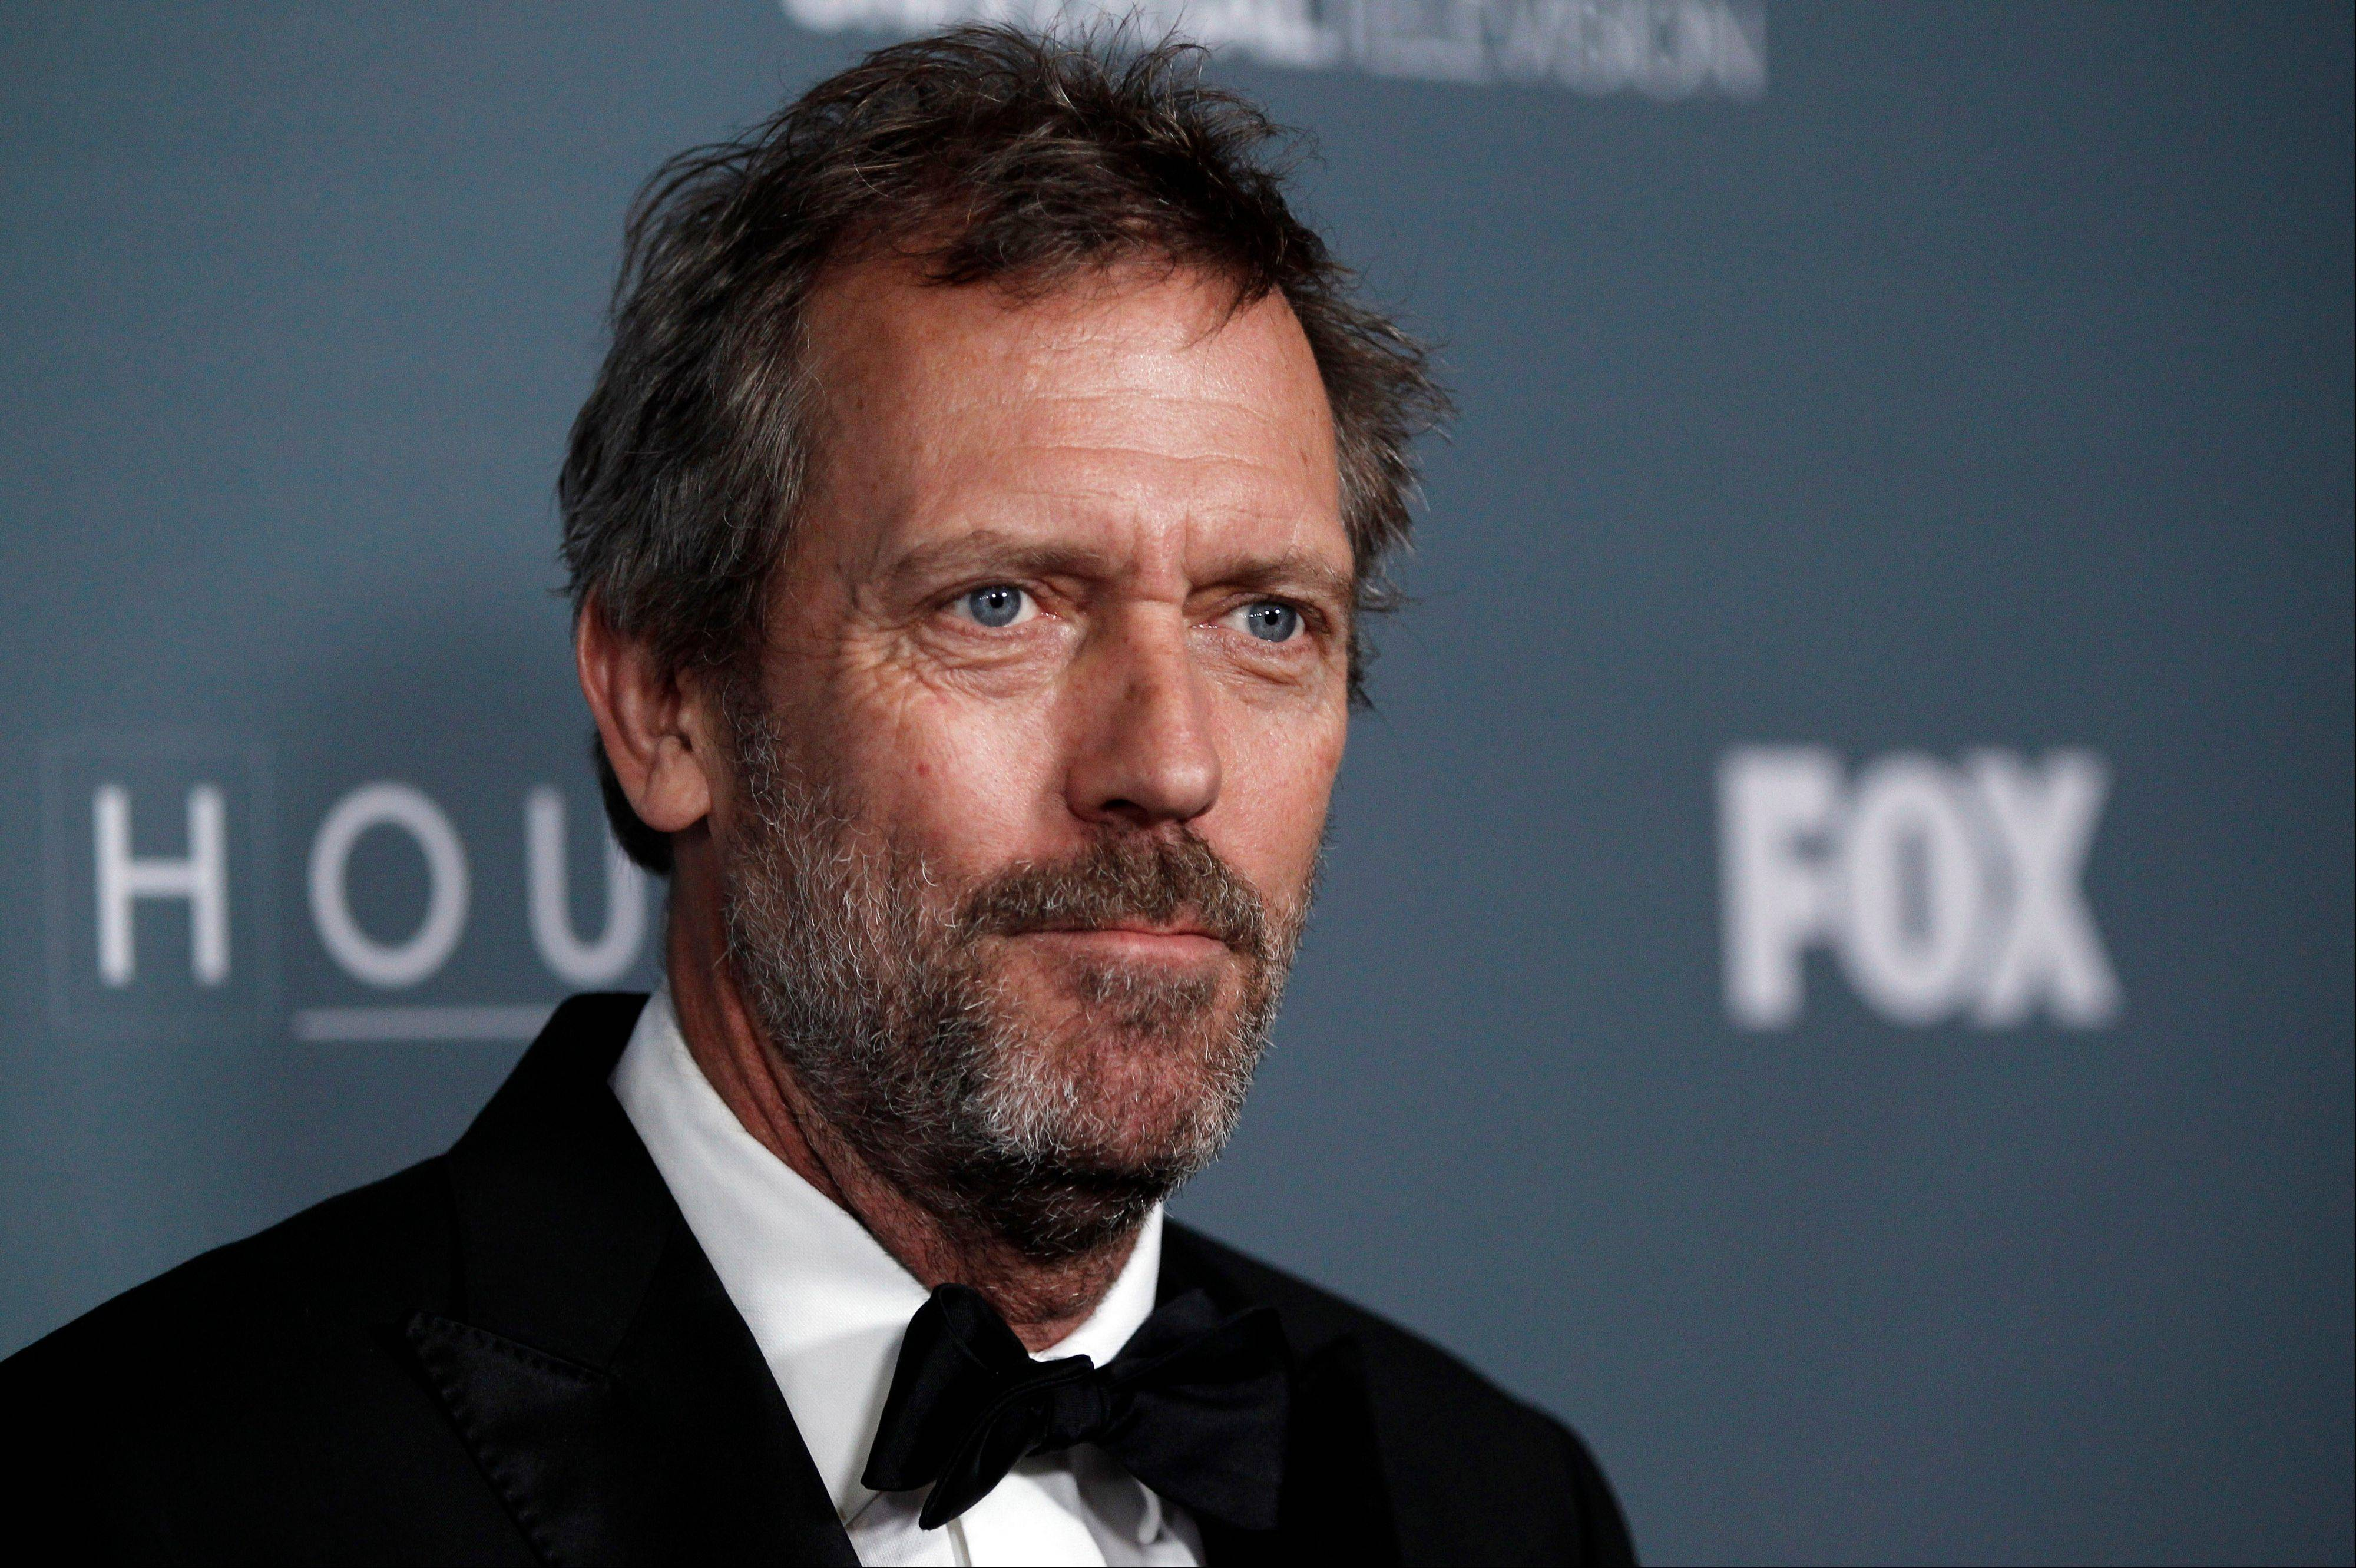 British actor Hugh Laurie played the eponymous House in the medical drama TV series.